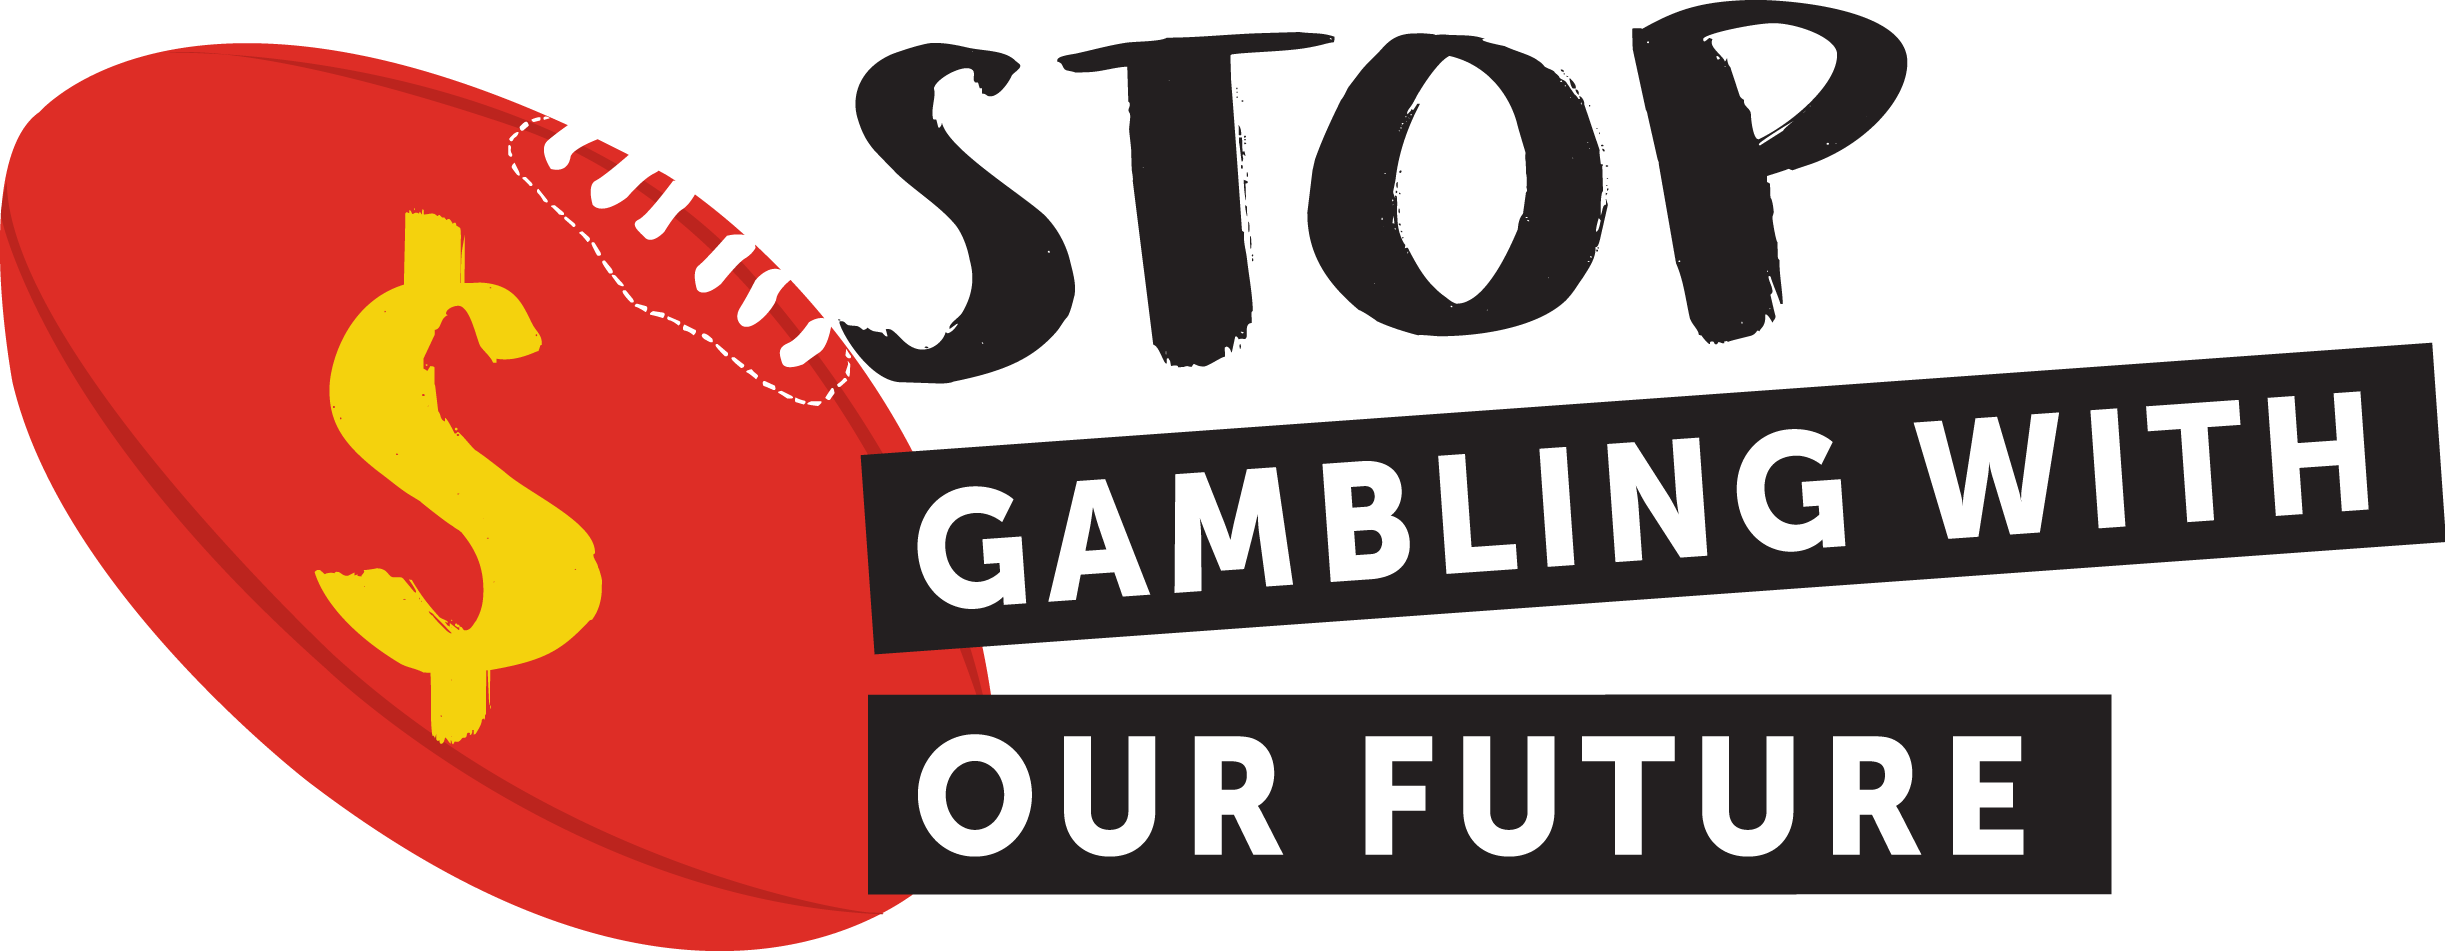 Stop Gambling With Our Future